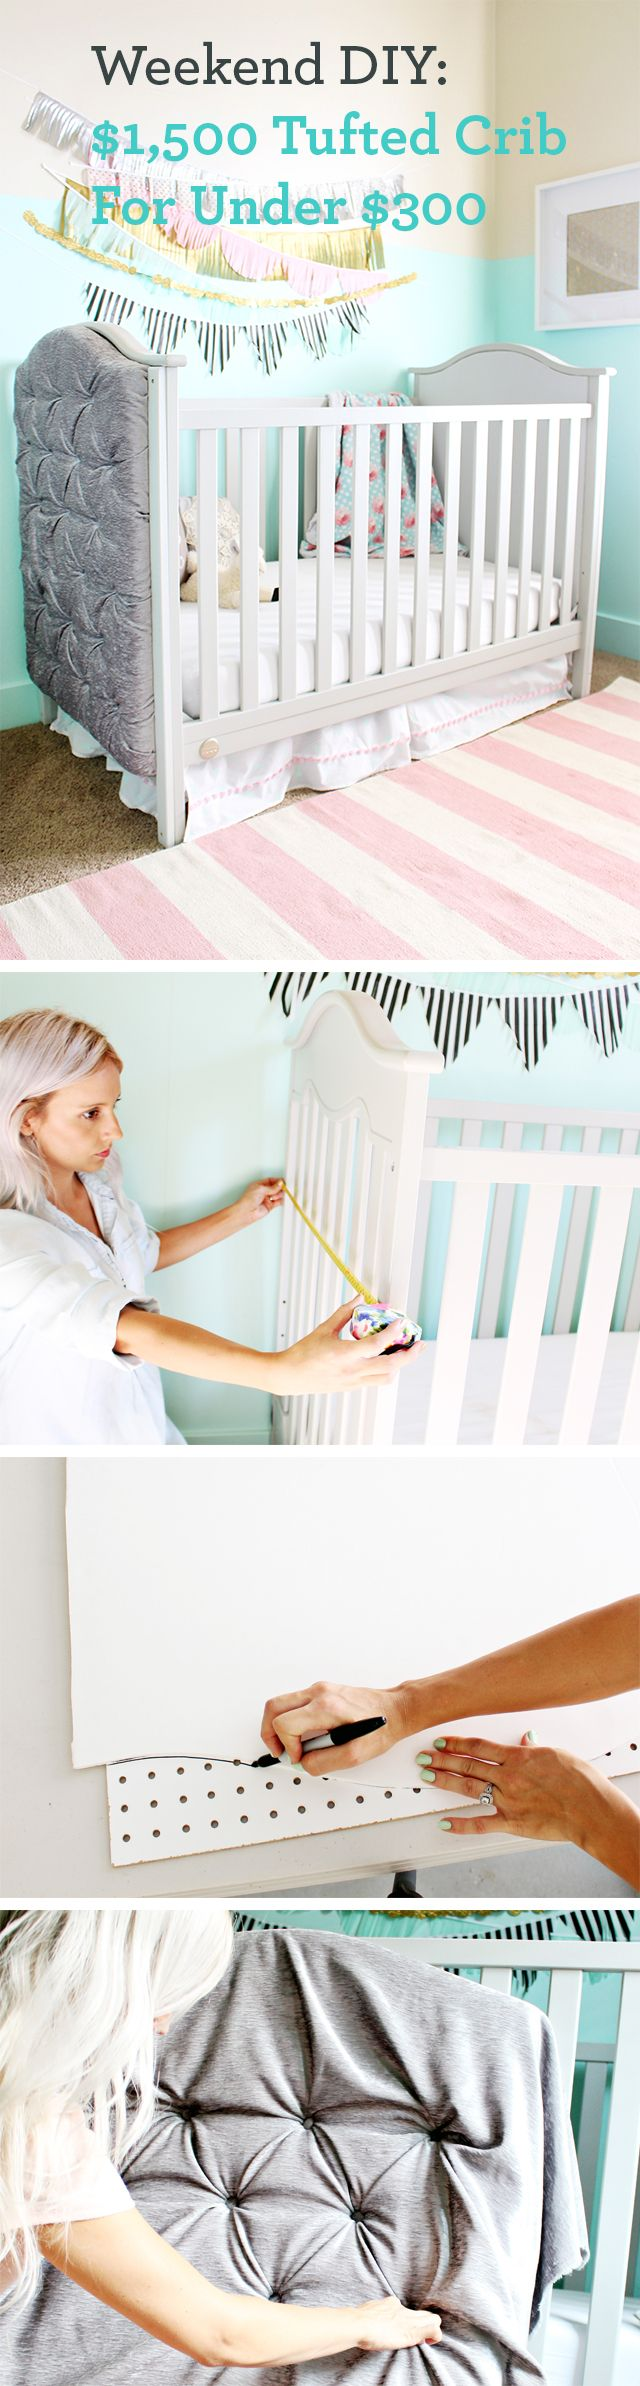 Baby crib gertie - Make A 1 500 Tufted Crib For 300